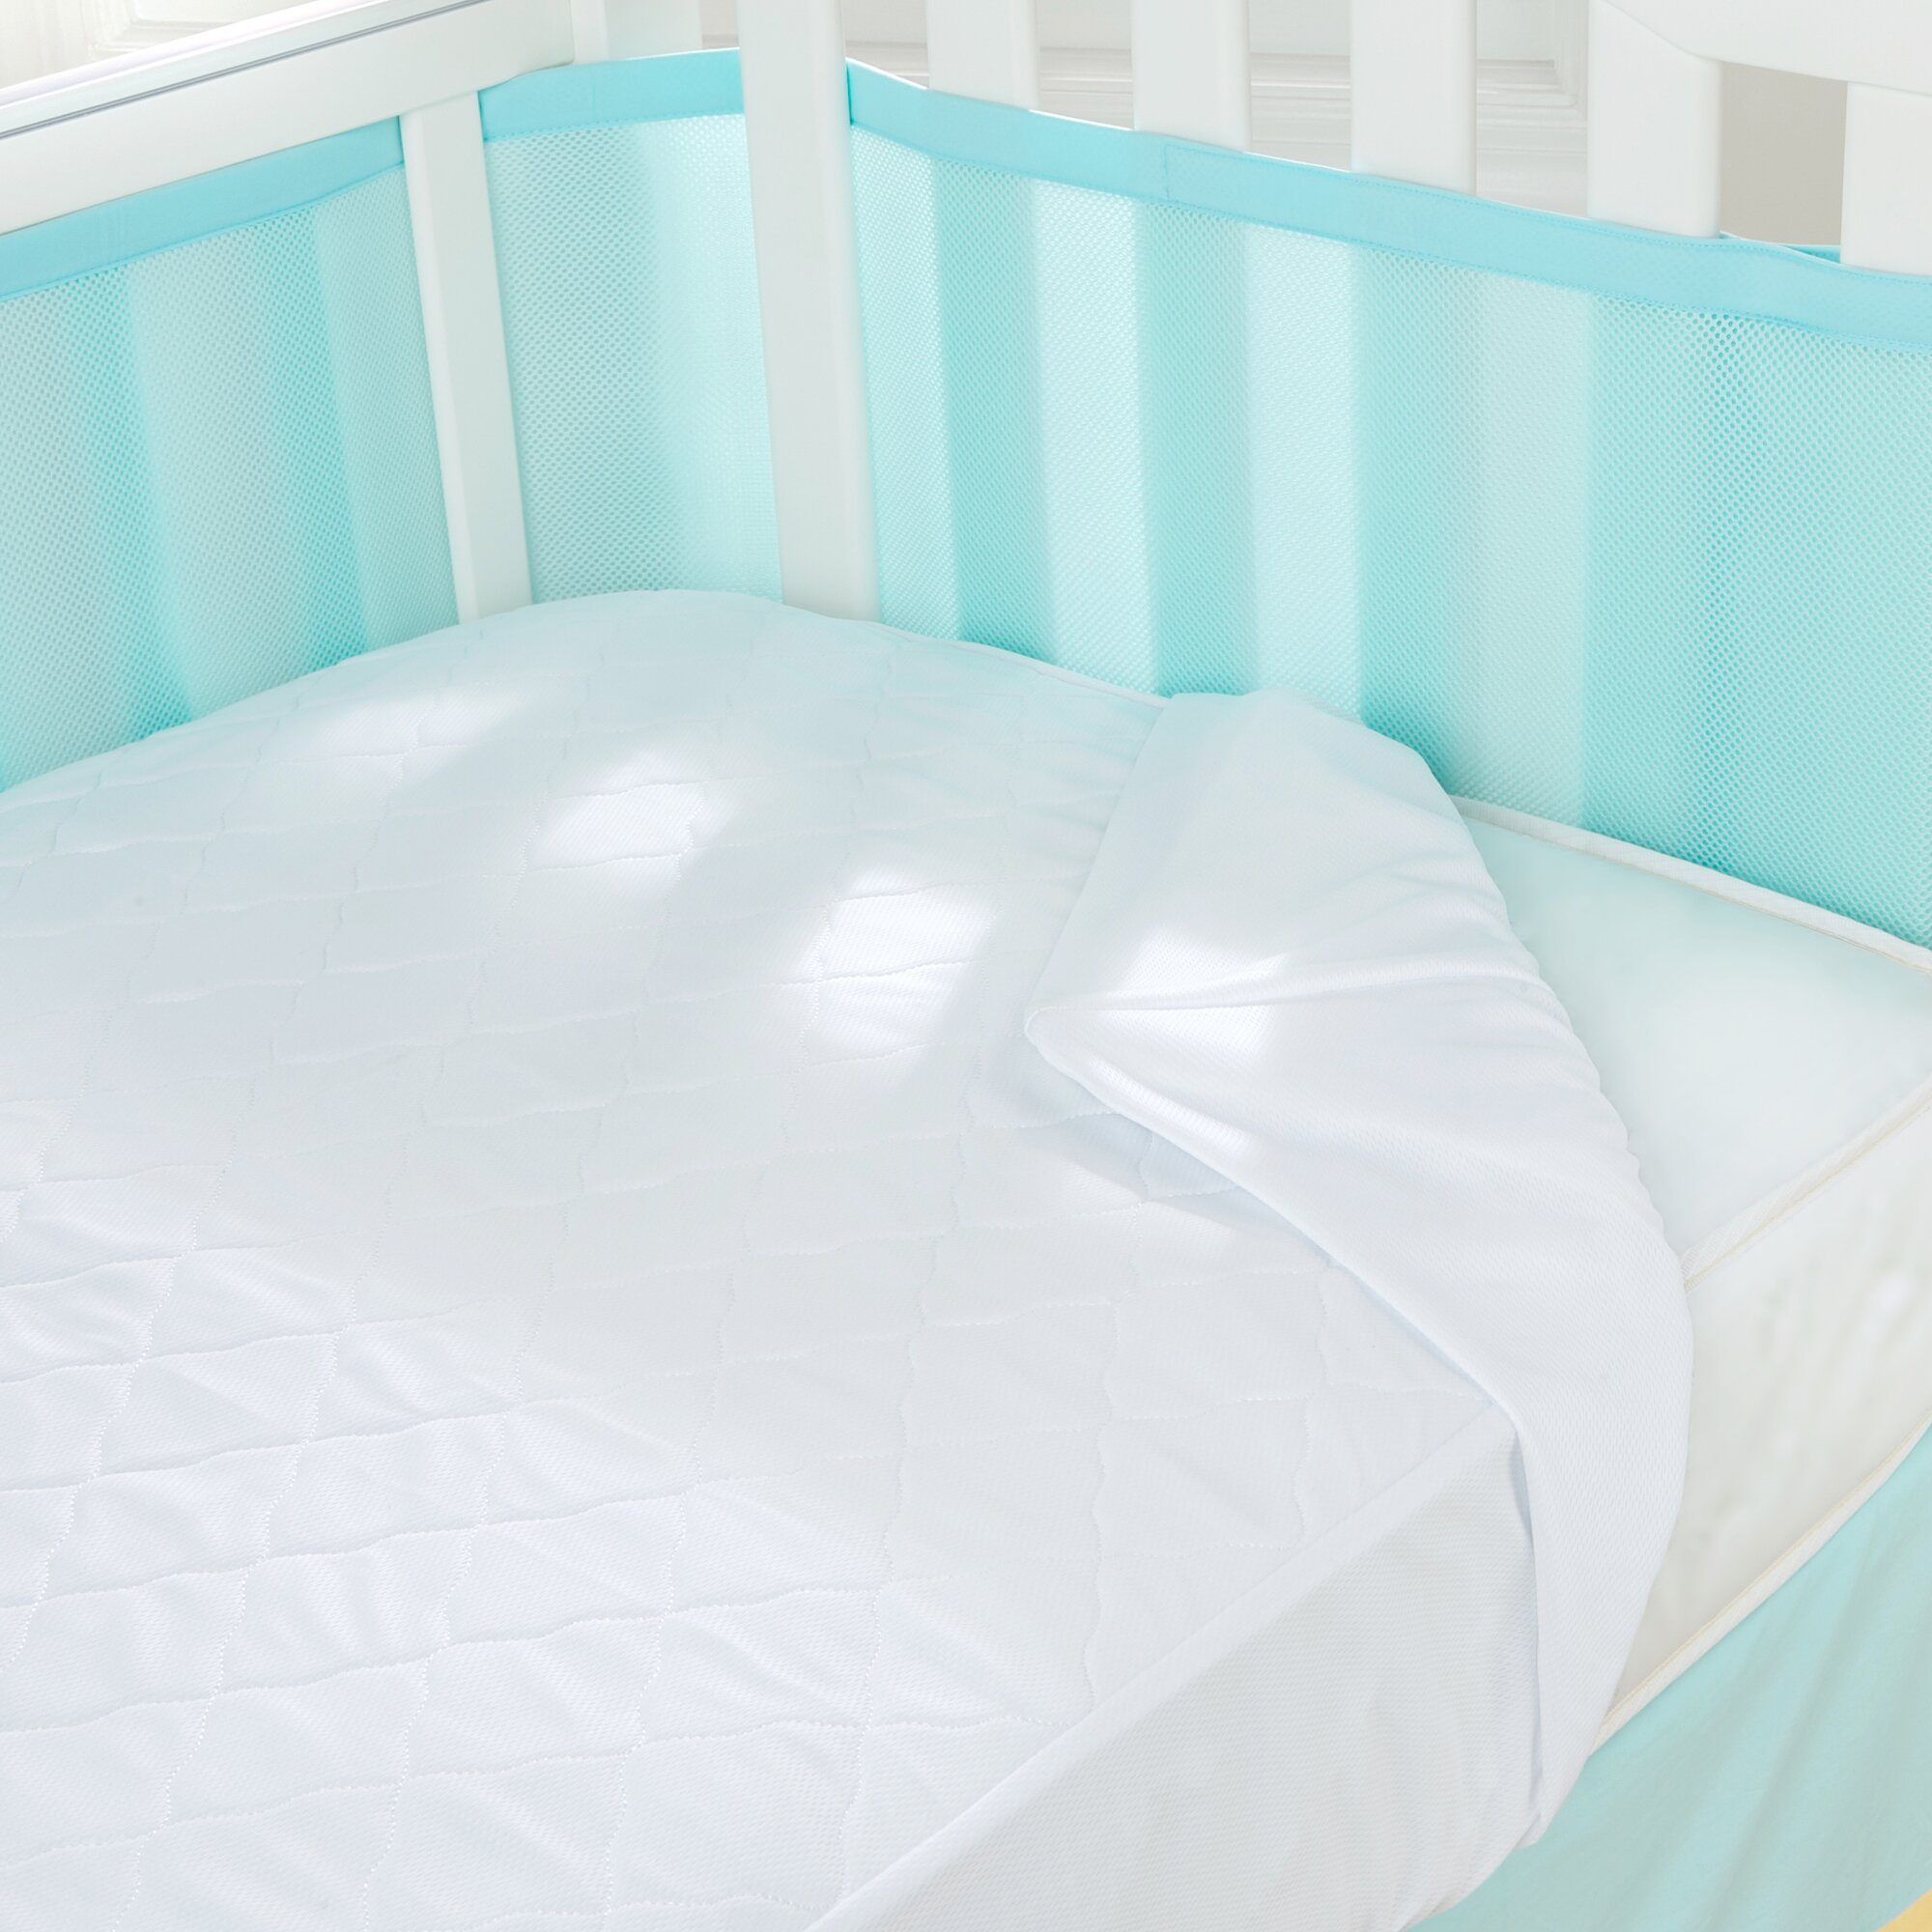 chic BREATHABLE BABY WICK-DRY SHEET FITS STANDARD SIZE CRIB MATTRESS